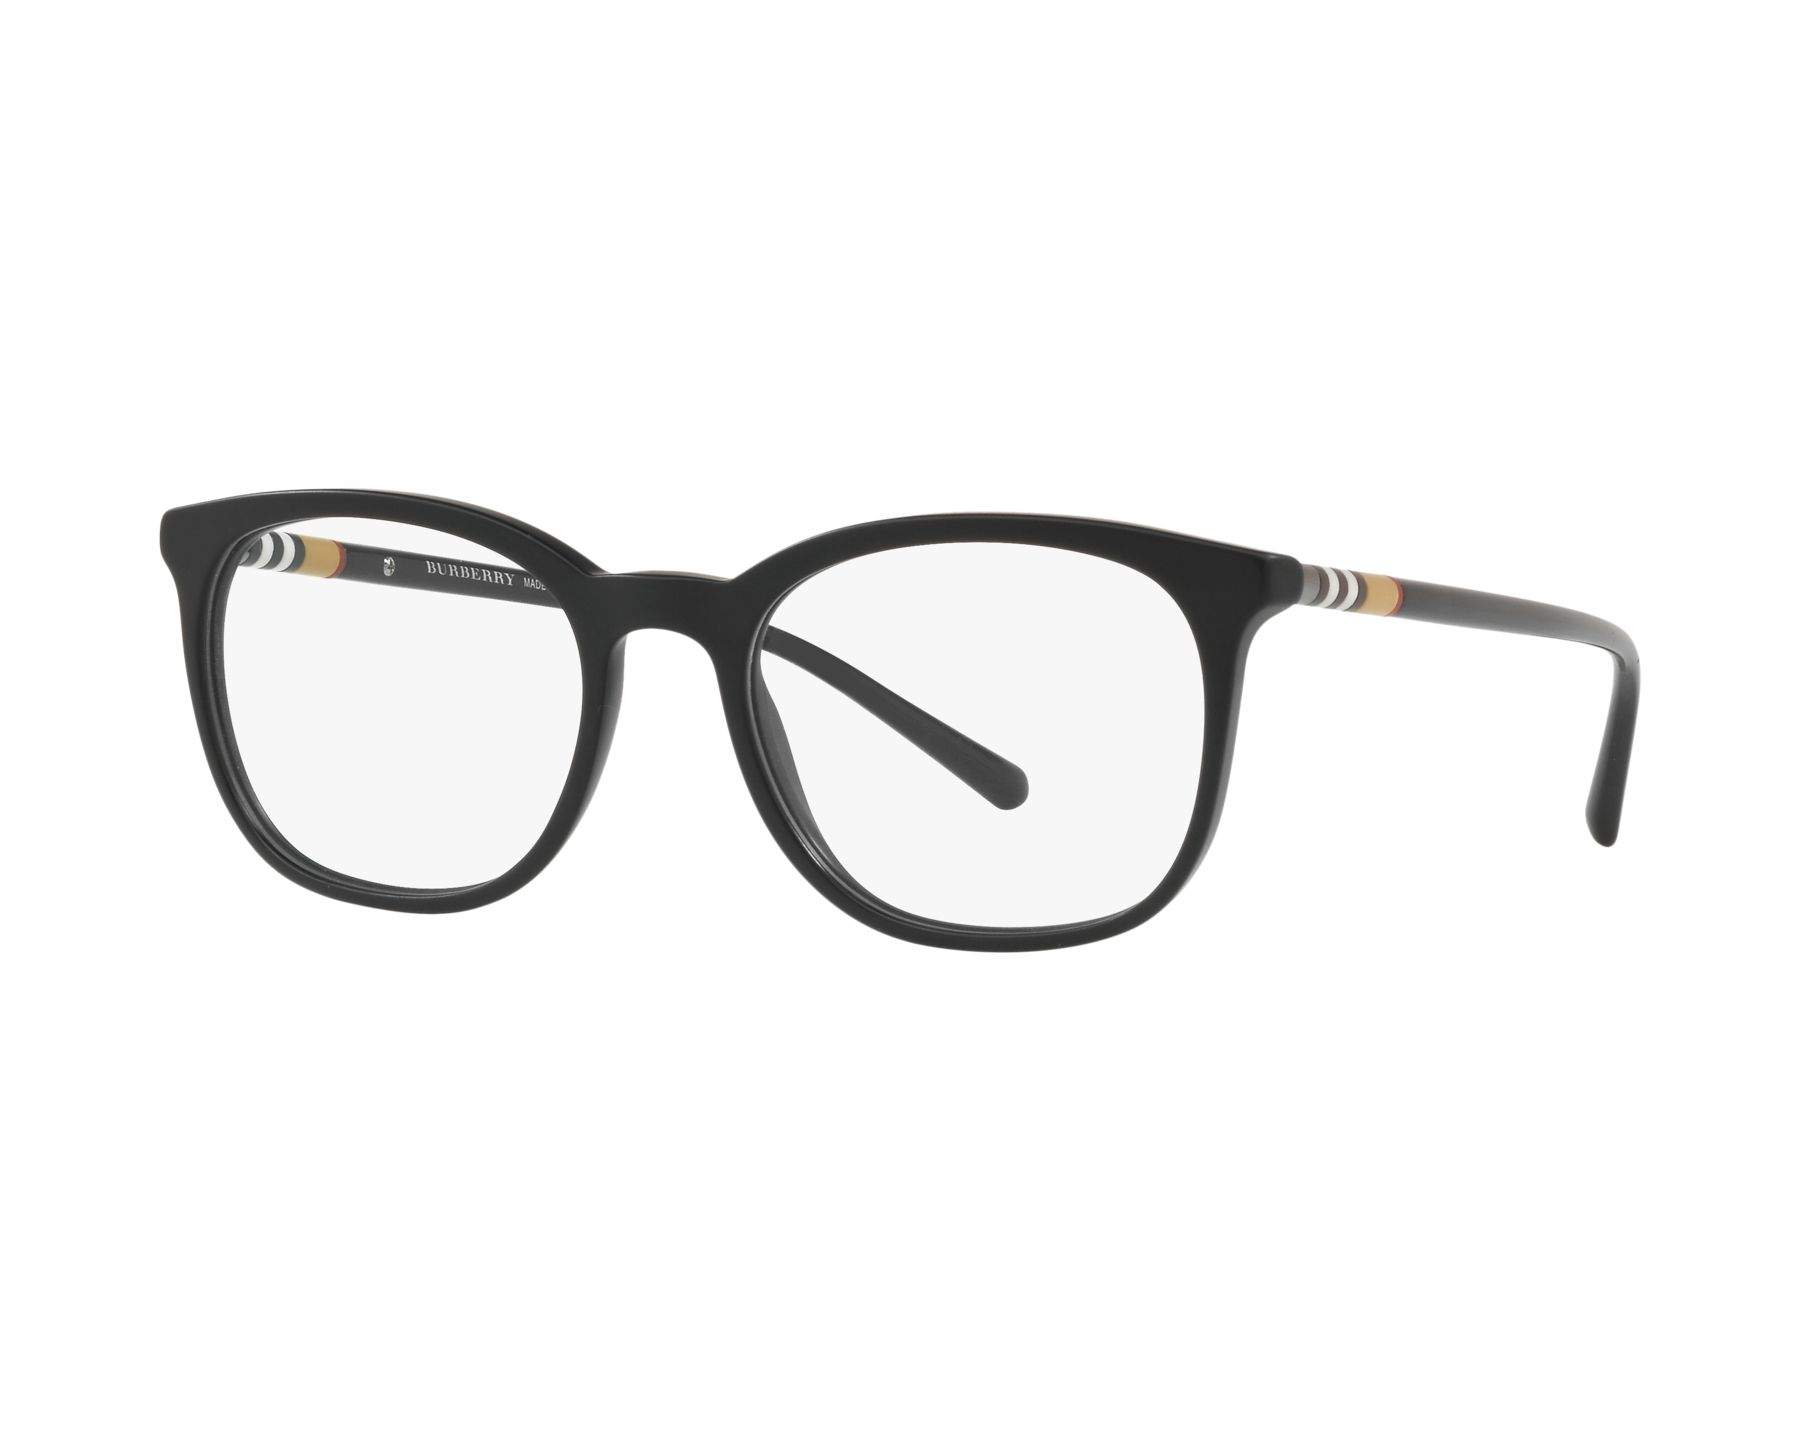 eyeglasses Burberry BE-2266 3464 54-19 Black Black 360 degree view 1